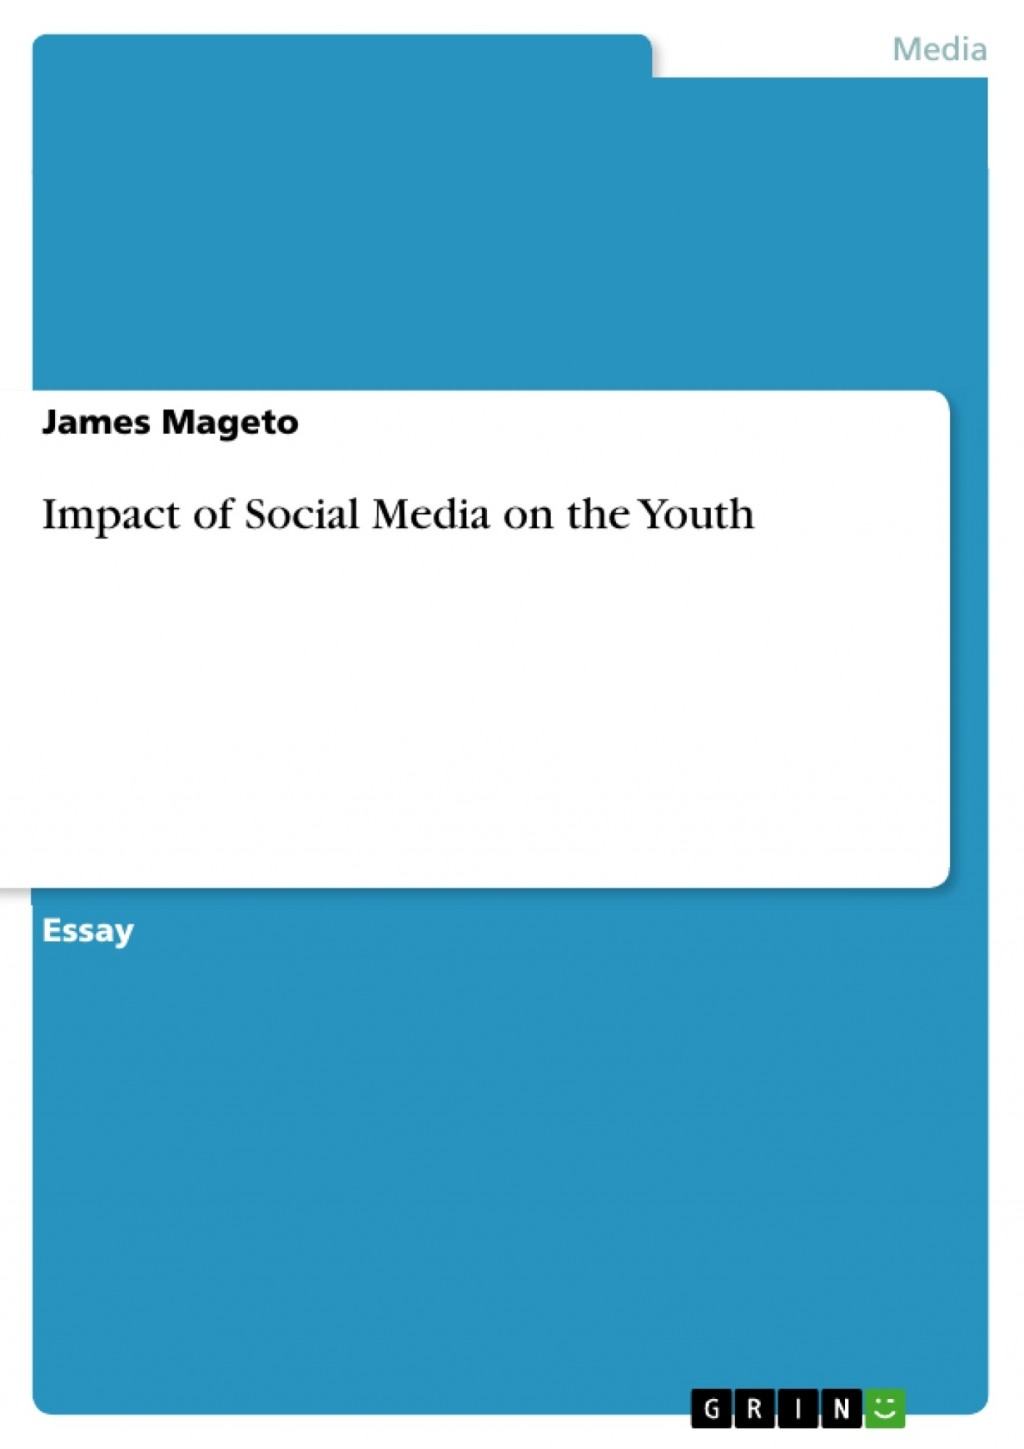 020 Research Paper Conclusion For About Social Media 358350 0 Awful Large